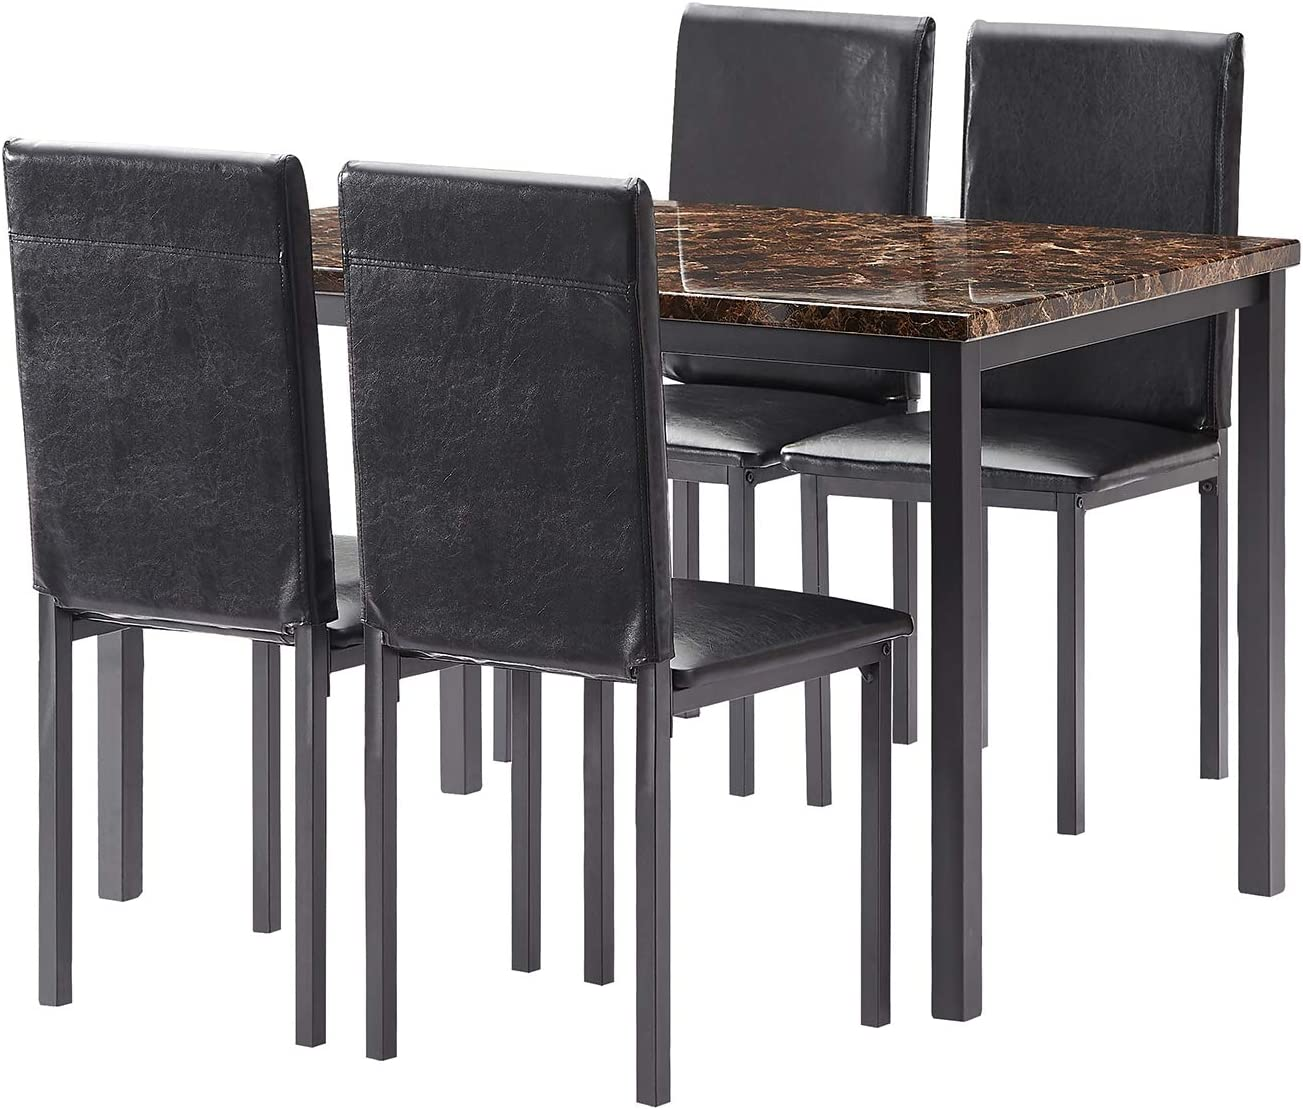 Mooseng Dining Table Set 5 Pieces Elegant Faux Marble Kitchen Table Set With 4 Upholstered Pu Leather Chairs Perfect For Bar Kitchen Breakfast Nook Living Room Black Table Chair Sets